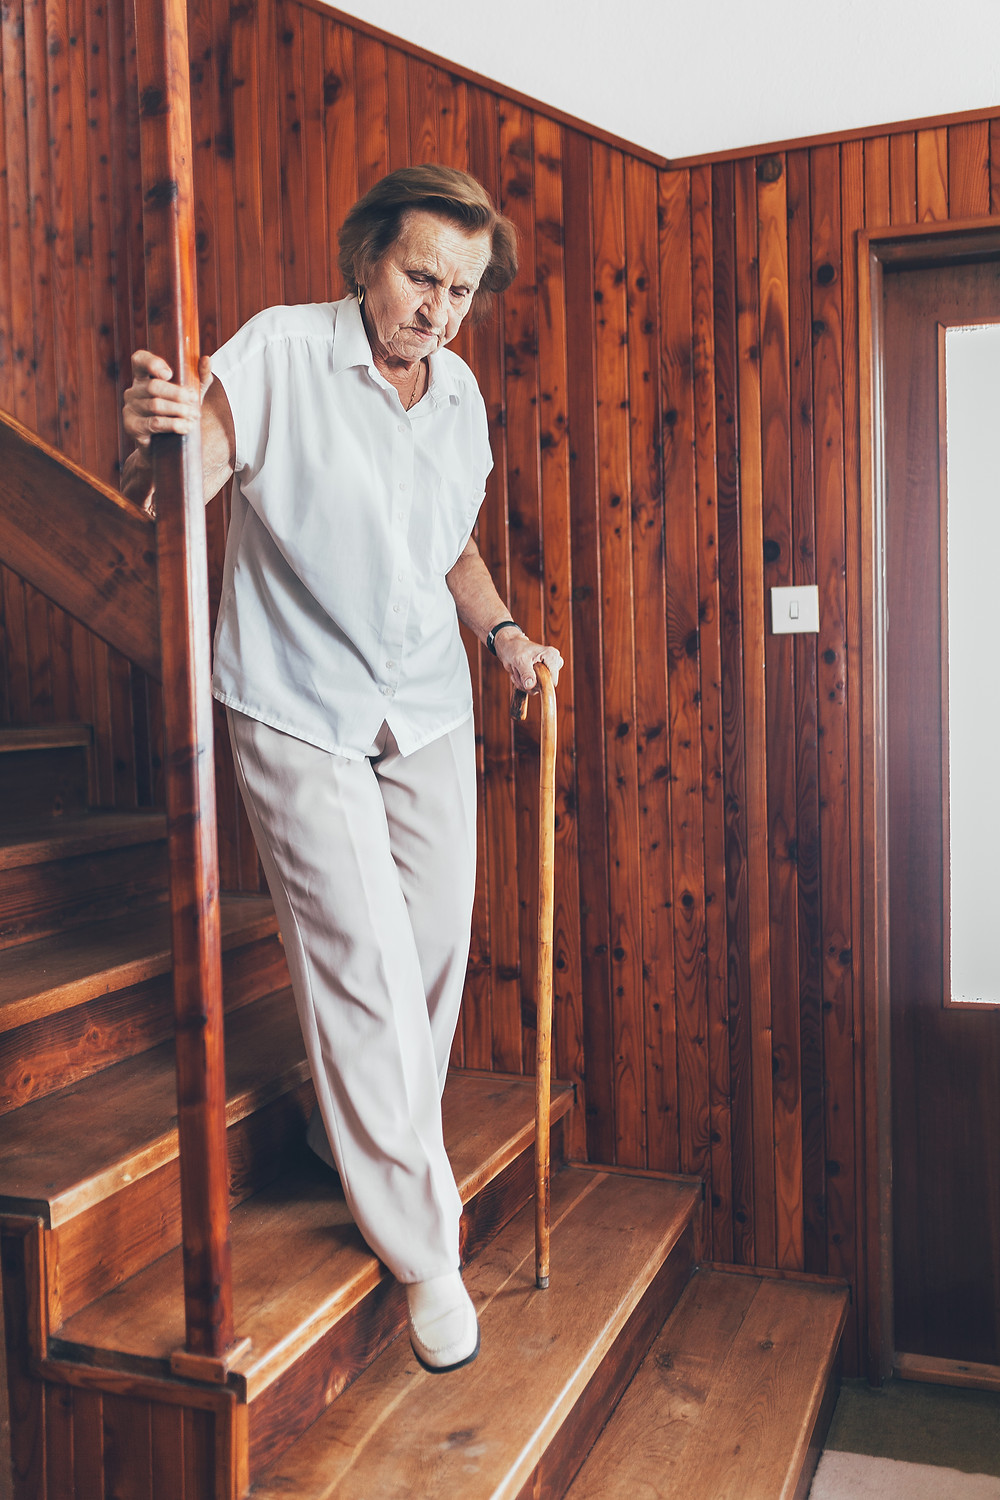 Senior woman using cane and vertical rail to navigate wooden steps.